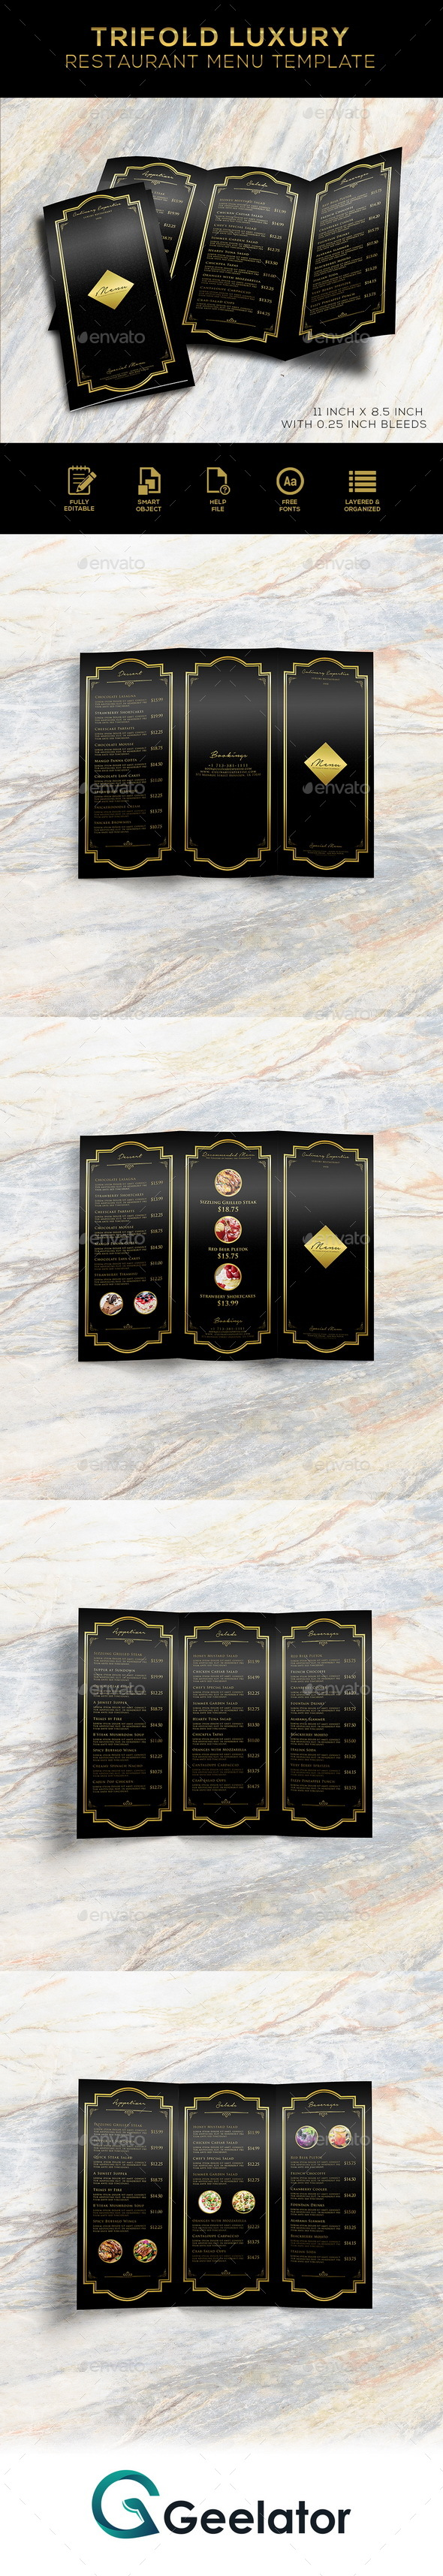 Tri-Fold Luxury Restaurant Menu Template - Food Menus Print Templates